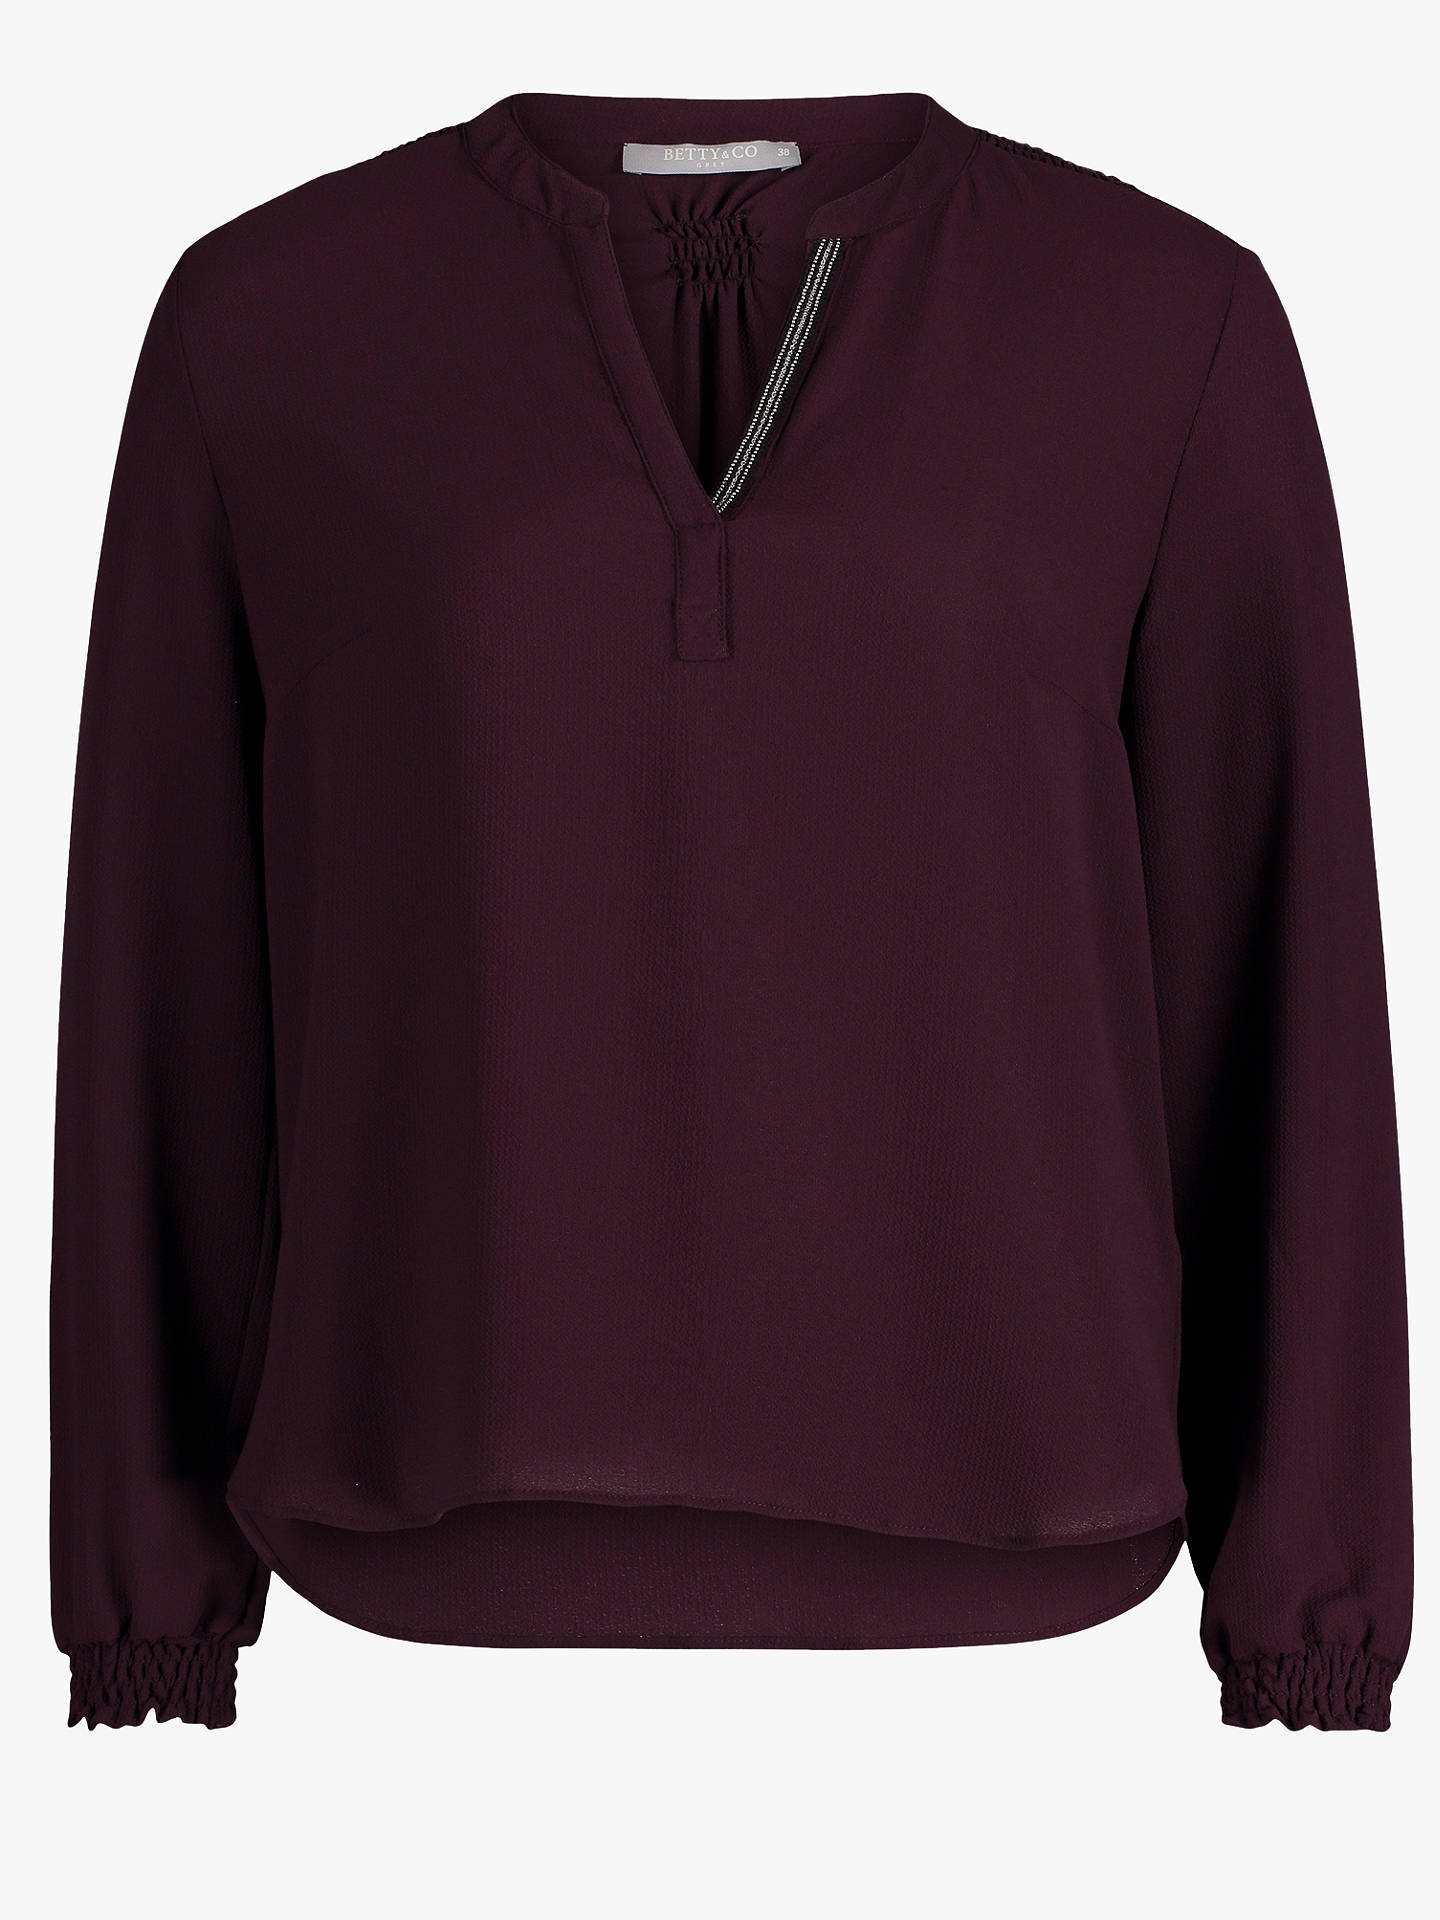 BuyBetty & Co. Crepe Blouse, Wine Tasting, 10 Online at johnlewis.com